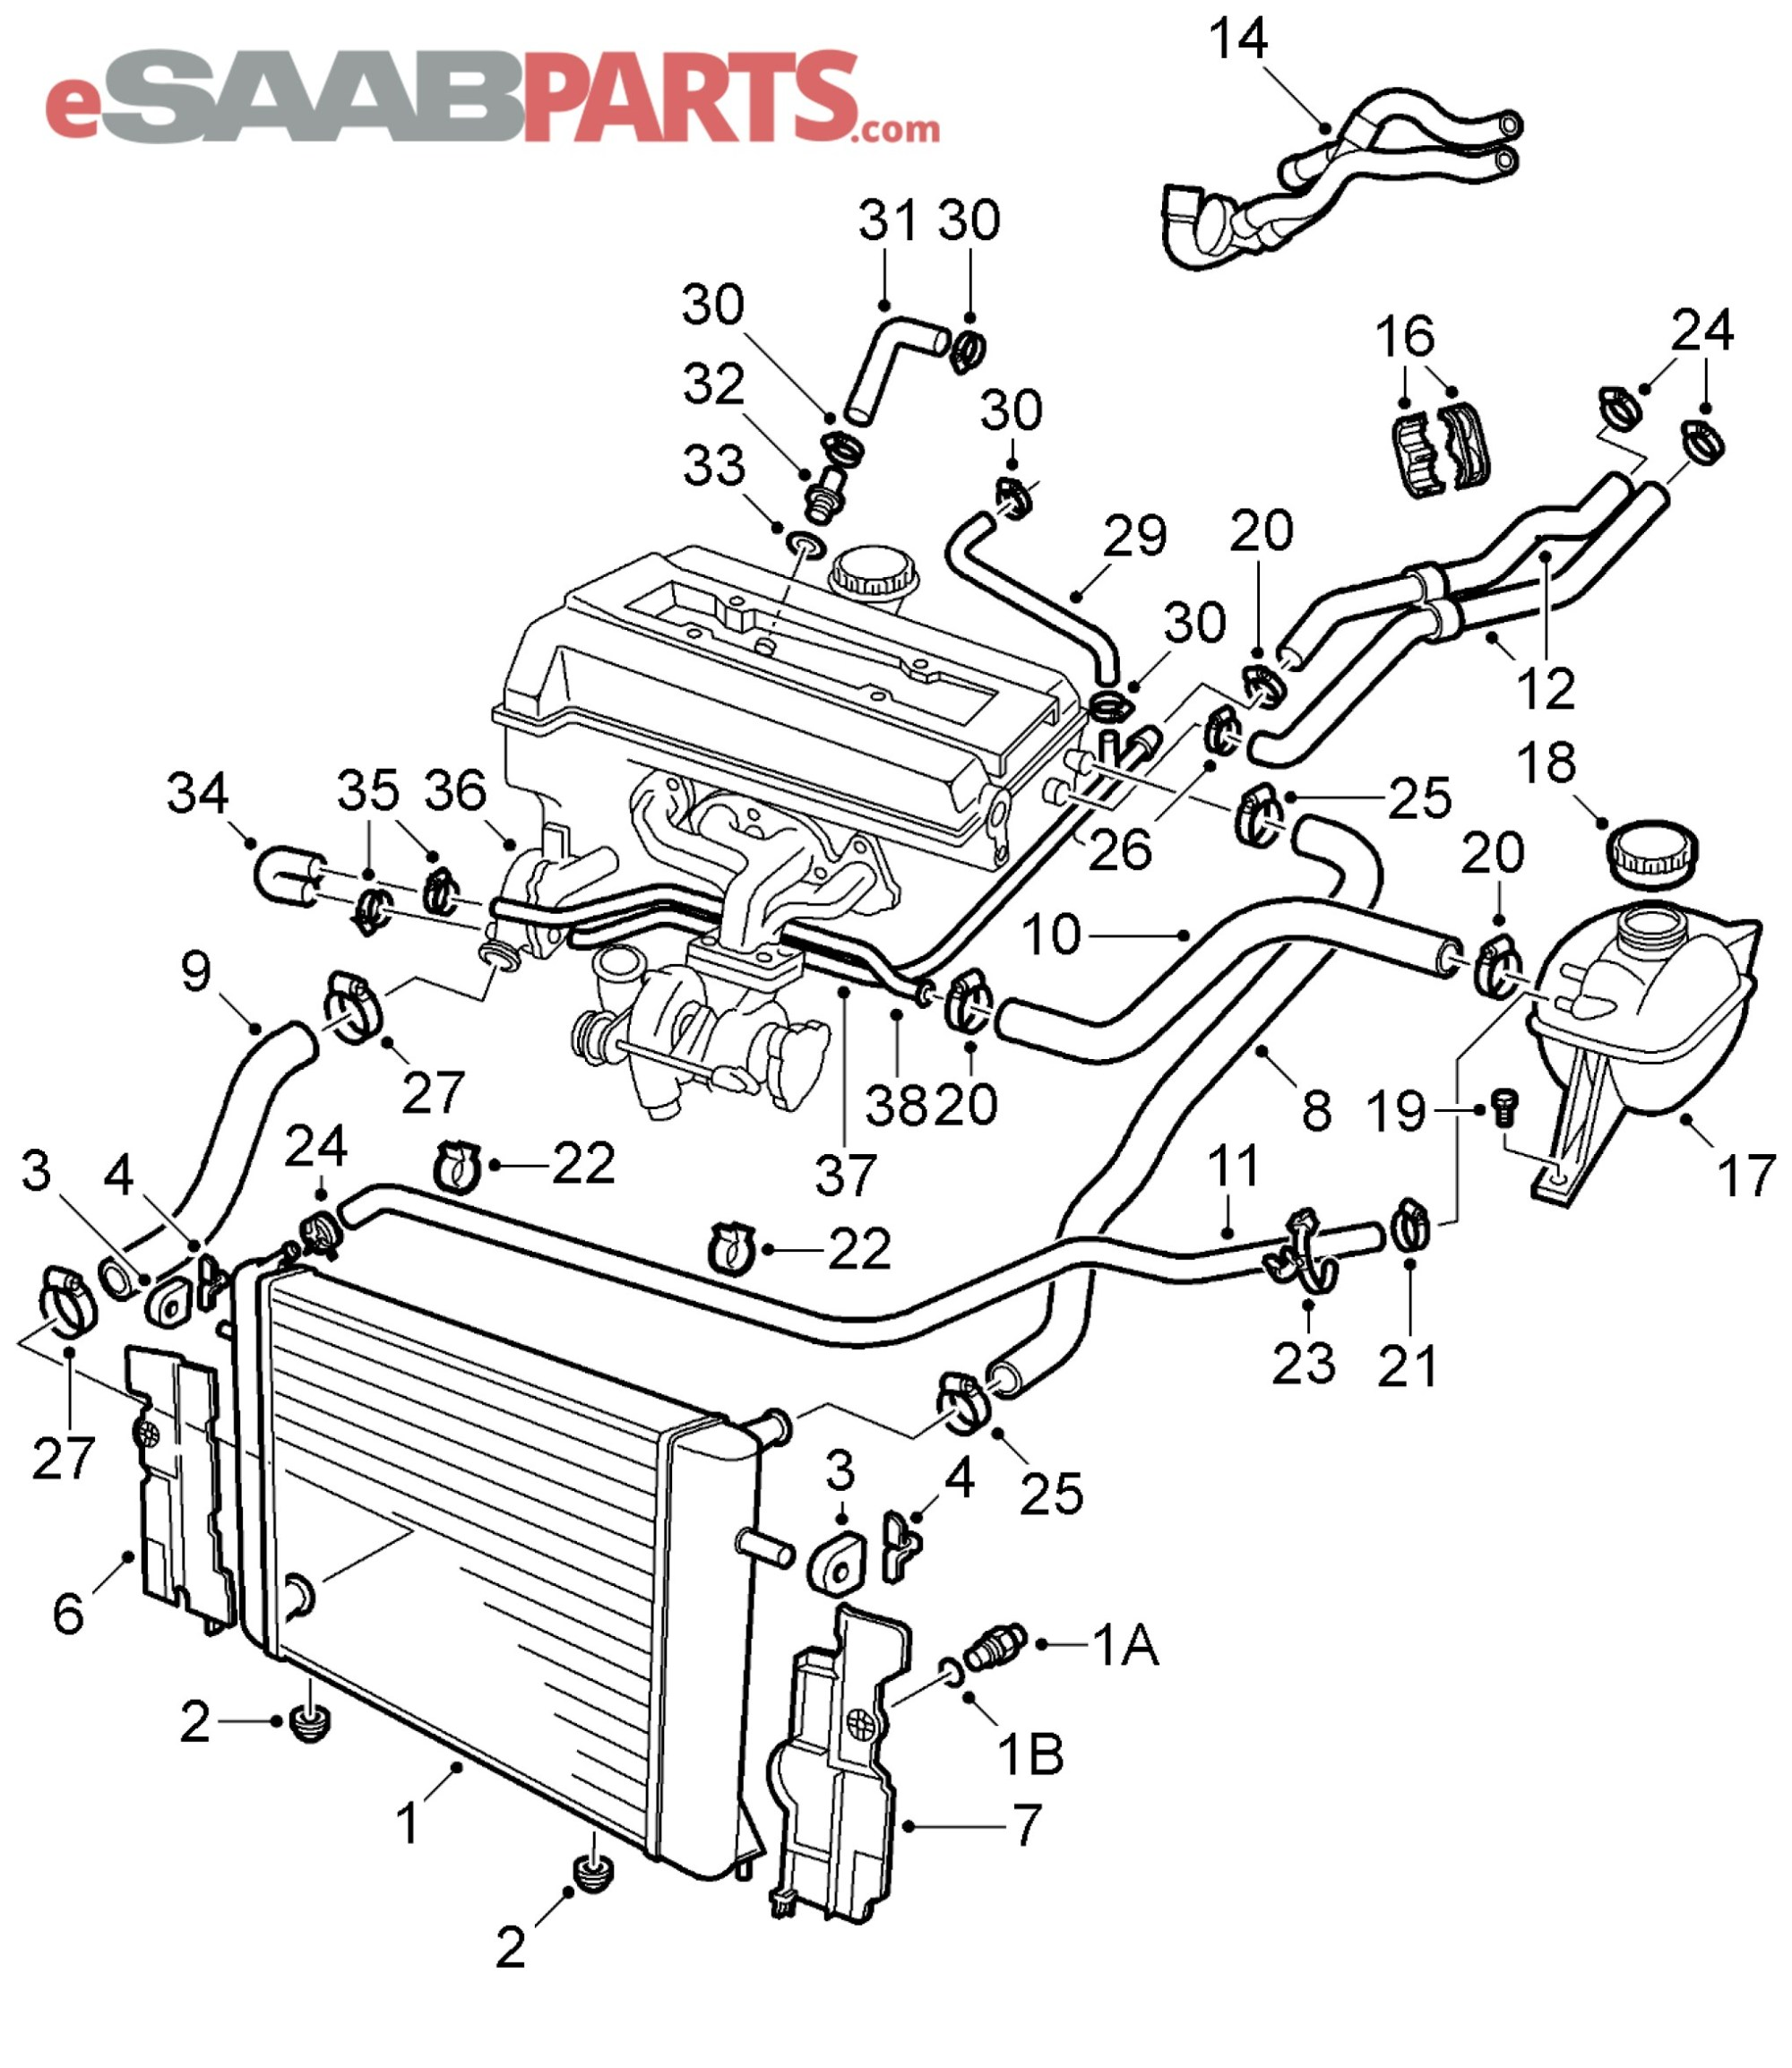 hight resolution of saab 900 engine diagram 3 per naturheilpraxis deistler plaug de u2022saab 900 engine diagram idq